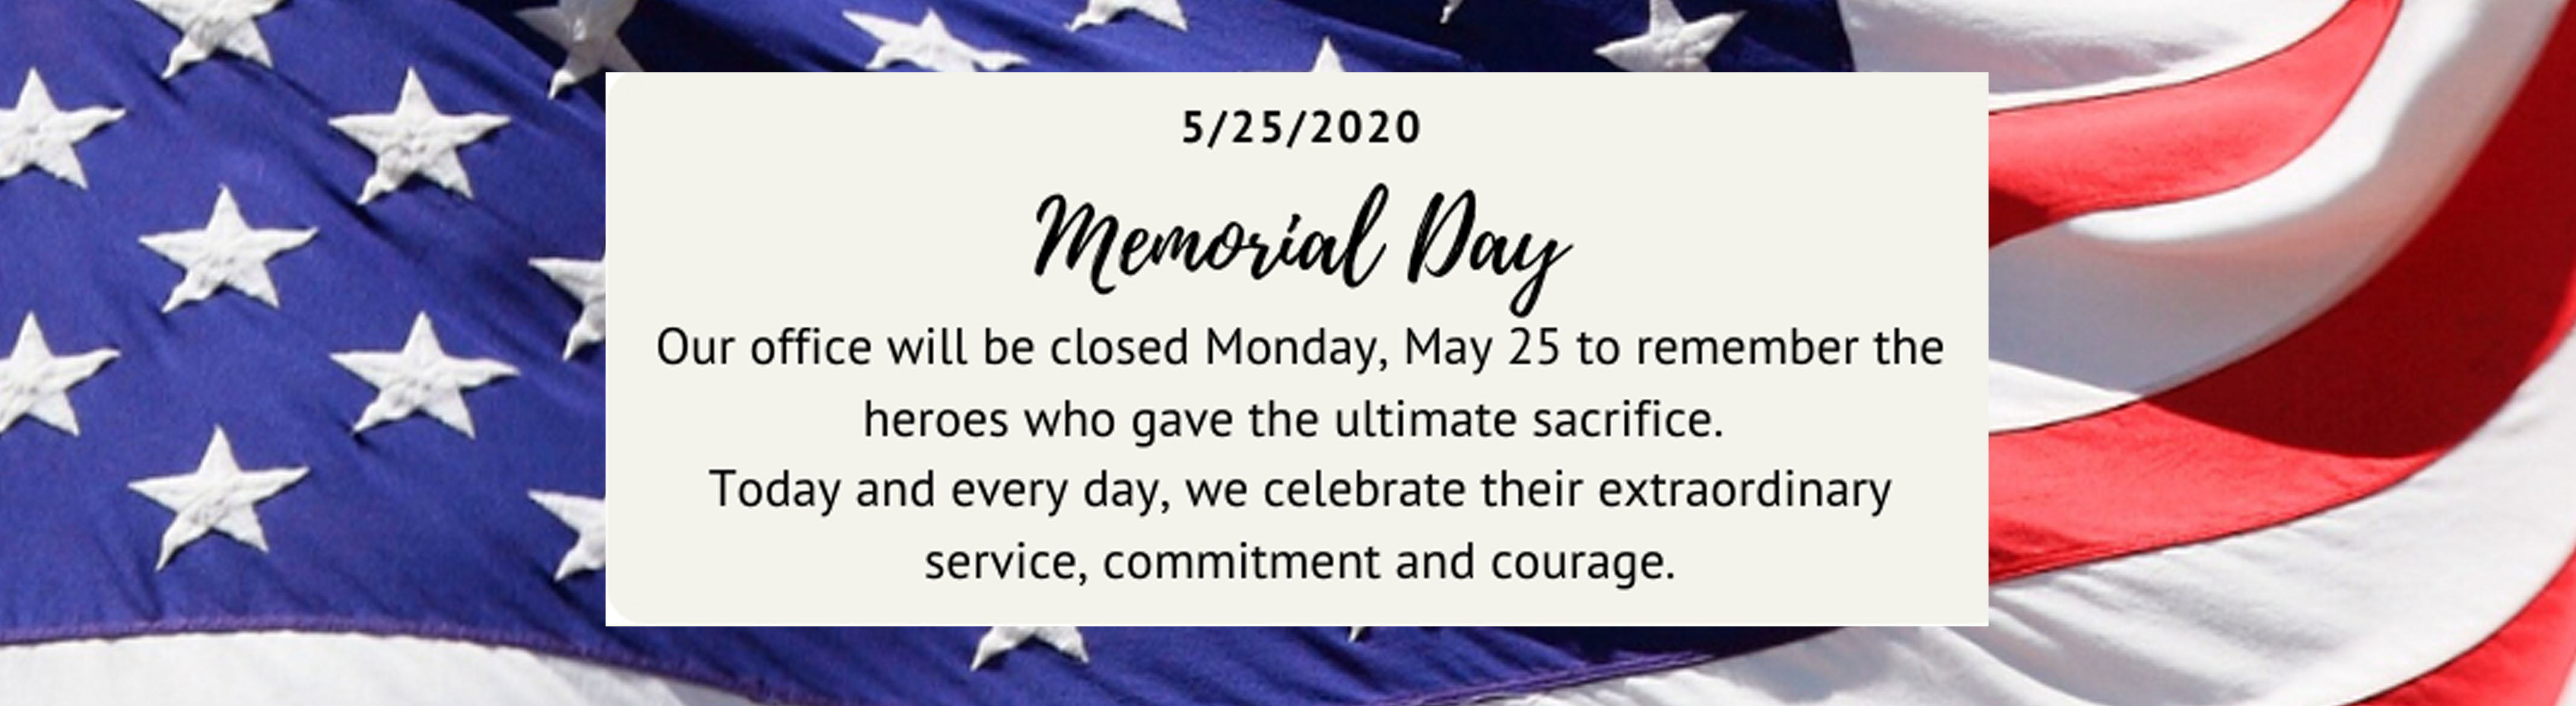 Our office will be closed for Memorial Day, Monday, May 25